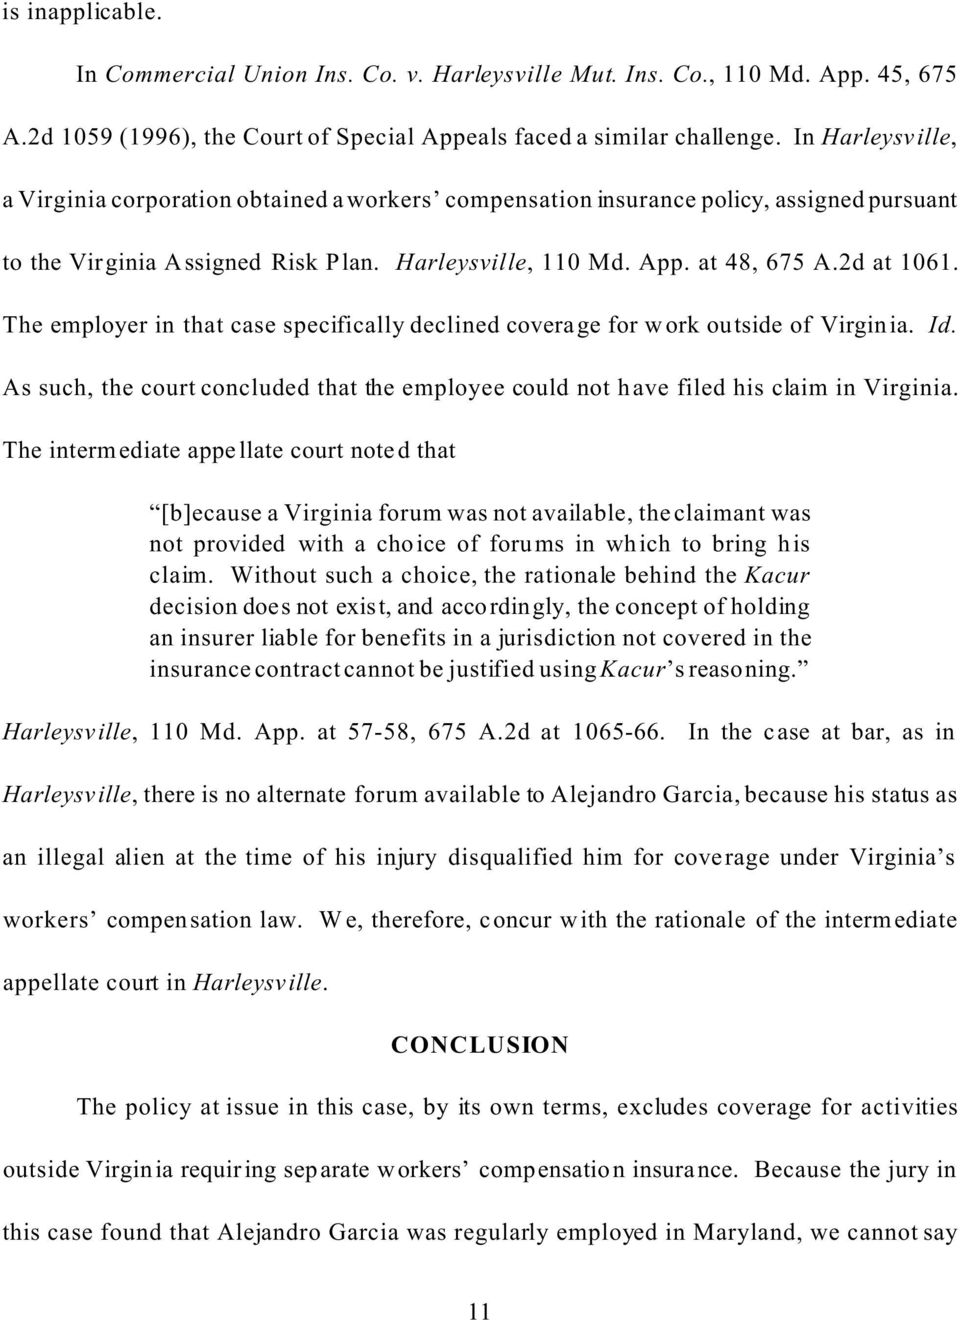 The employer in that case specifically declined coverage for work outside of Virginia. Id. As such, the court concluded that the employee could not have filed his claim in Virginia.